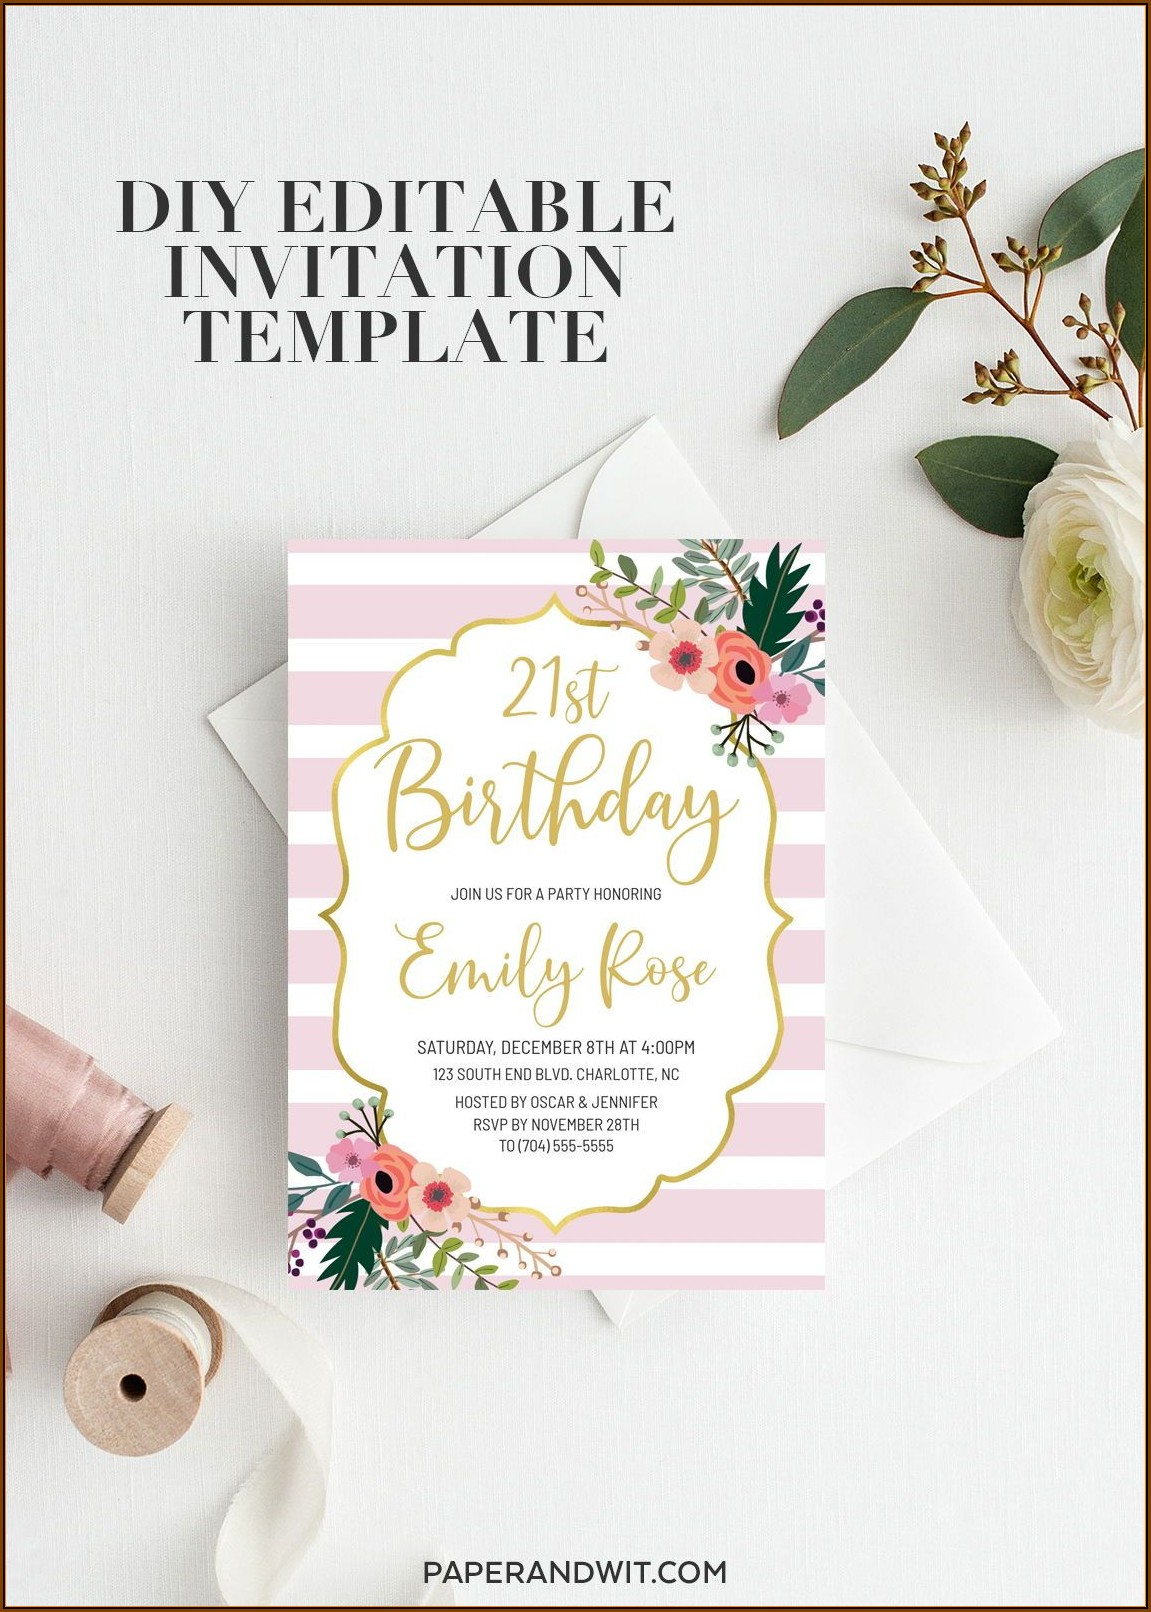 21st Birthday Invitation Templates For Her